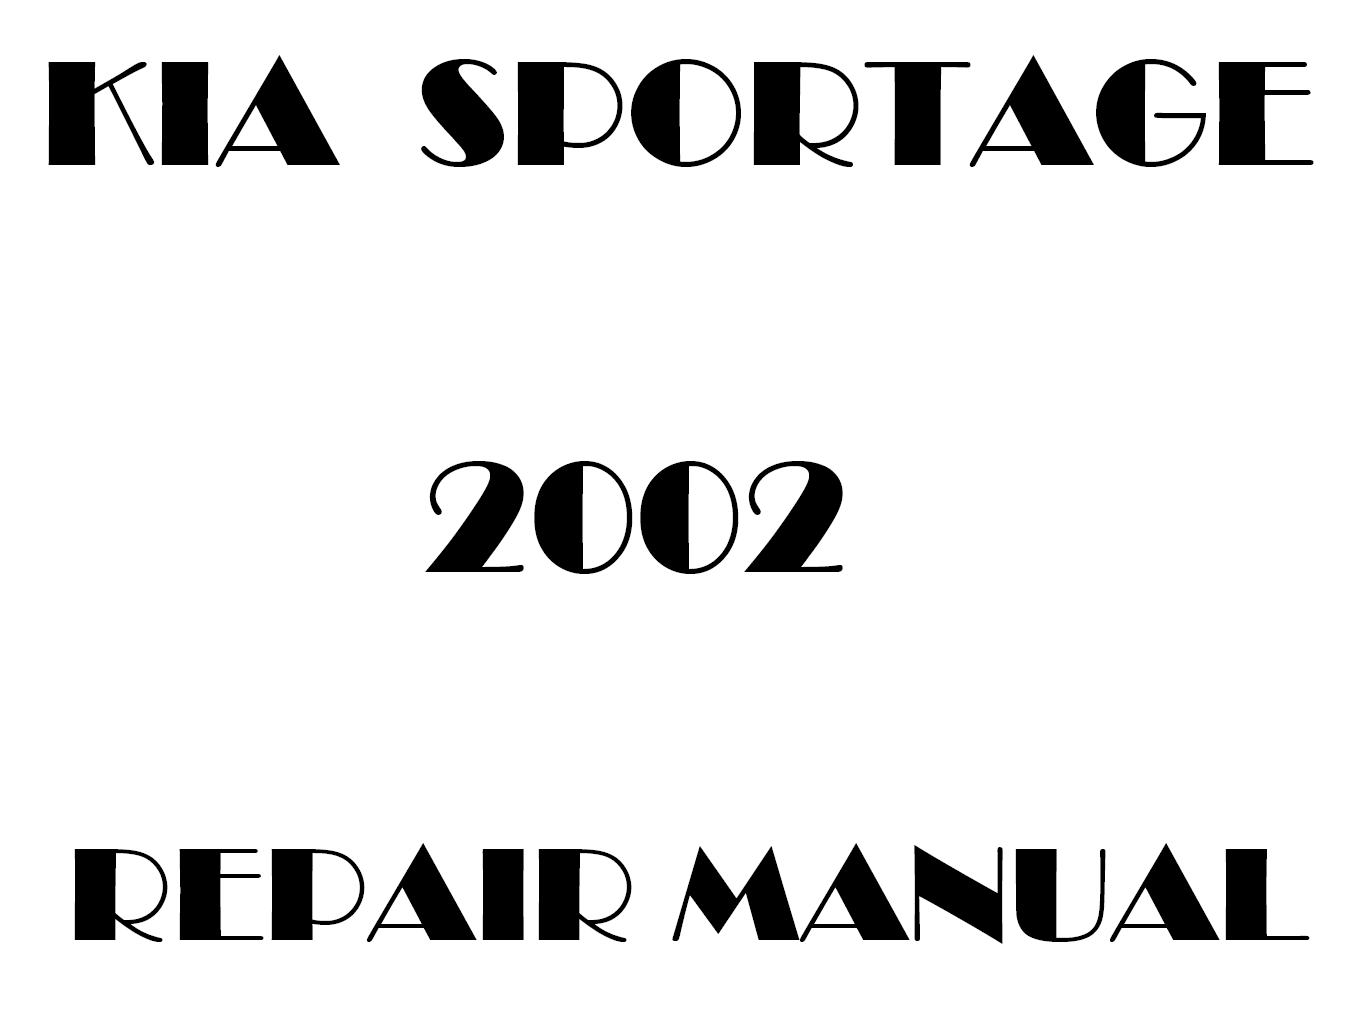 2002 Kia Sportage repair manual